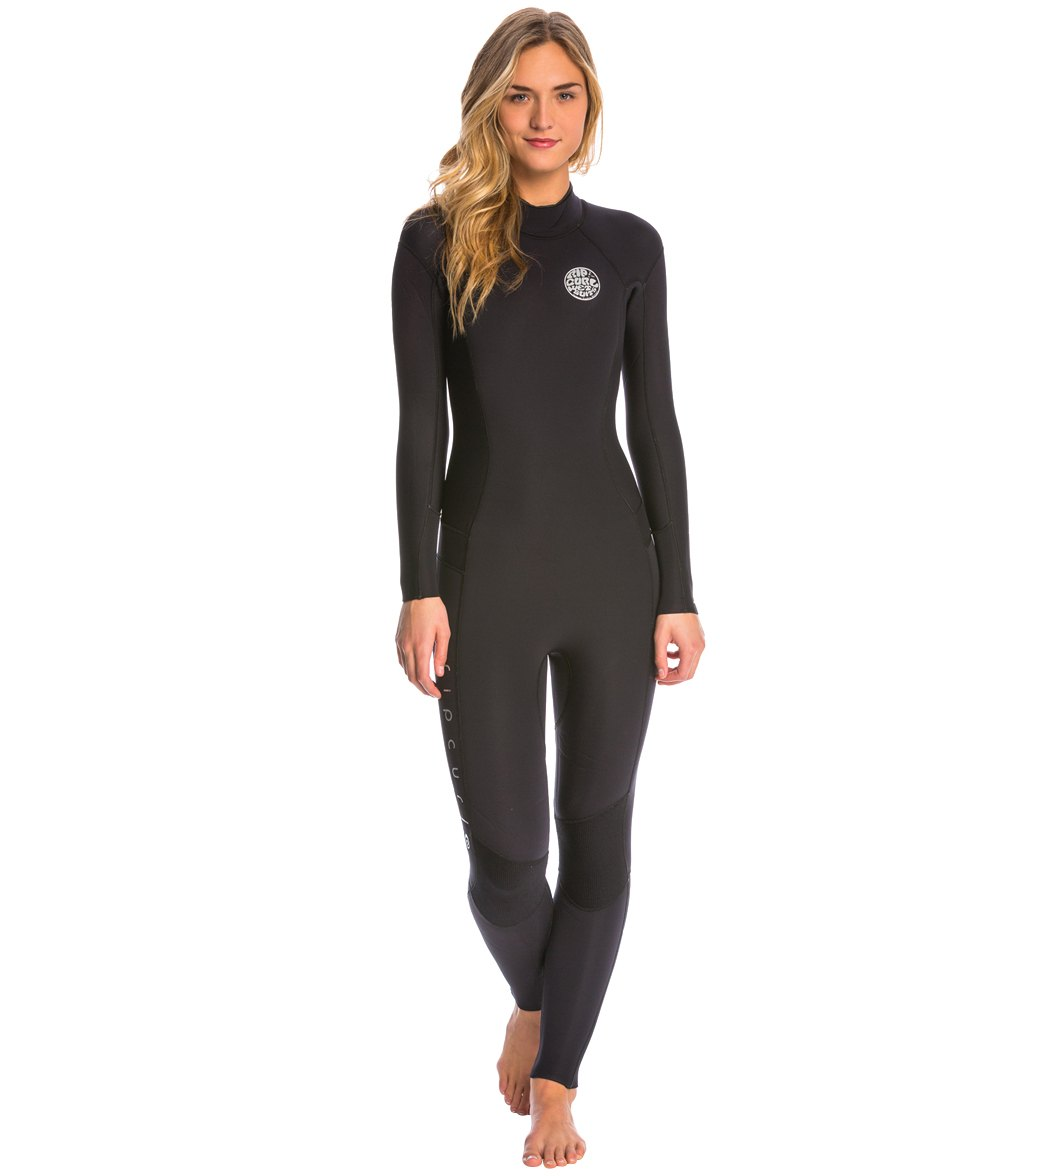 52203cba7c4c Rip Curl Women s 3 2mm Dawn Patrol Back Zip Fullsuit Wetsuit at ...